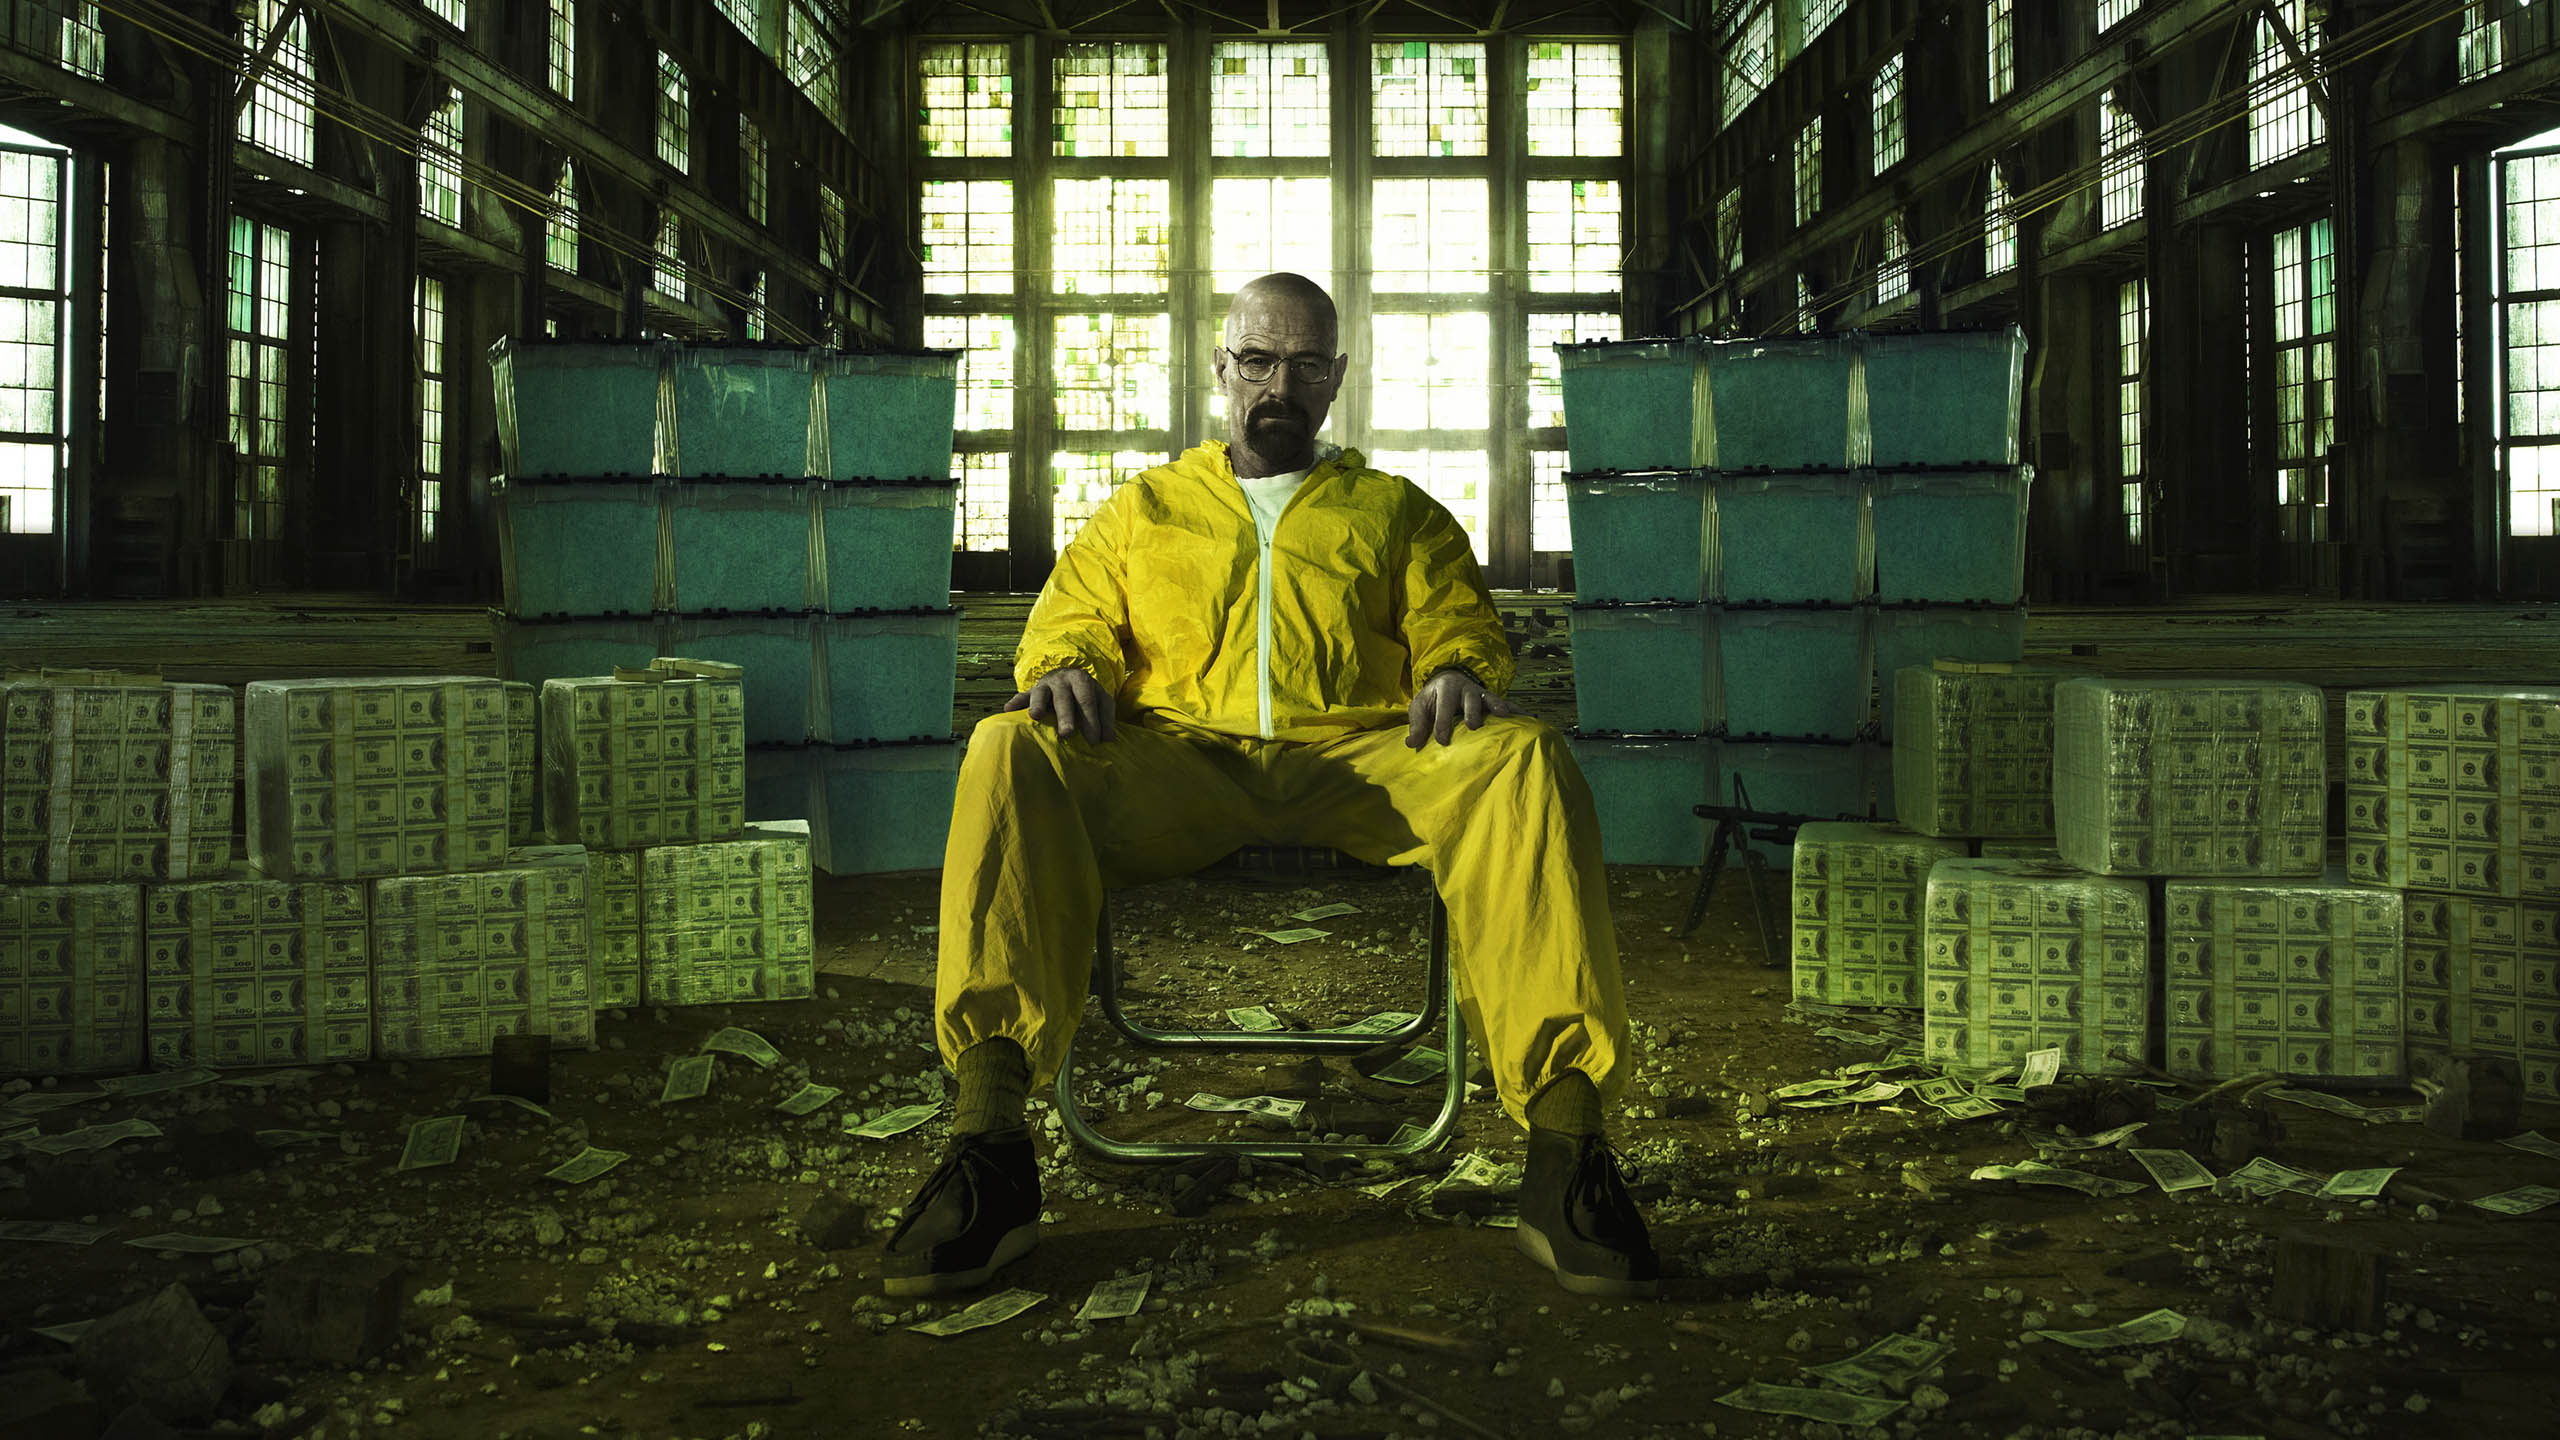 Breaking Bad Videos | Trailers, Recaps, Previews, Behind the Scenes | AMC